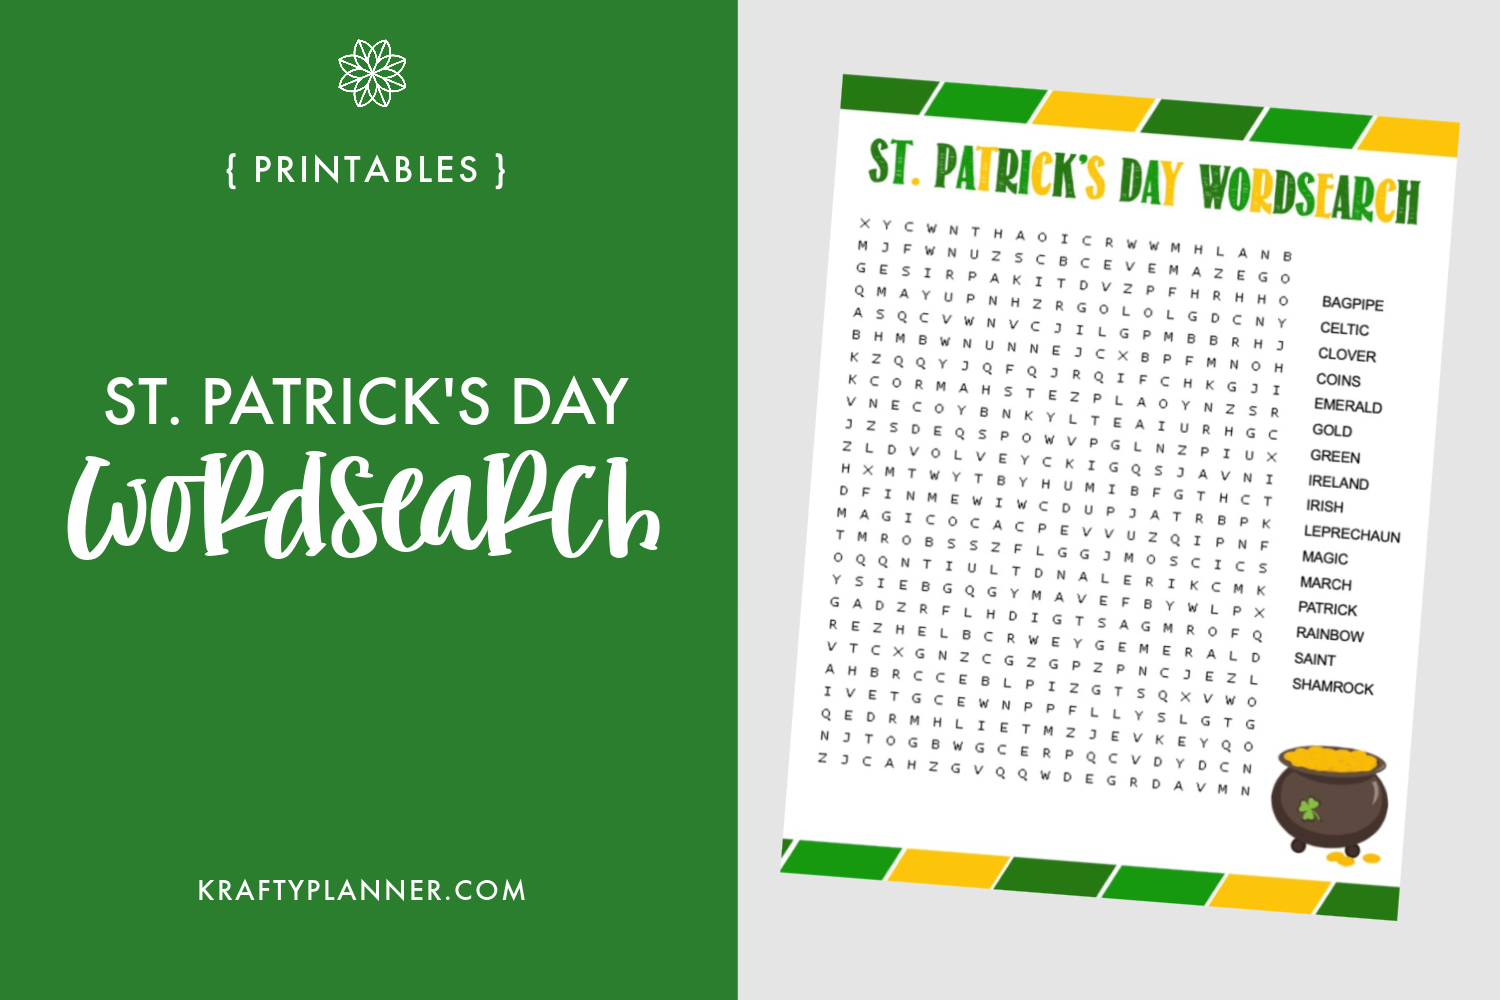 St. Patricks Day Wordsearch Main Image.png